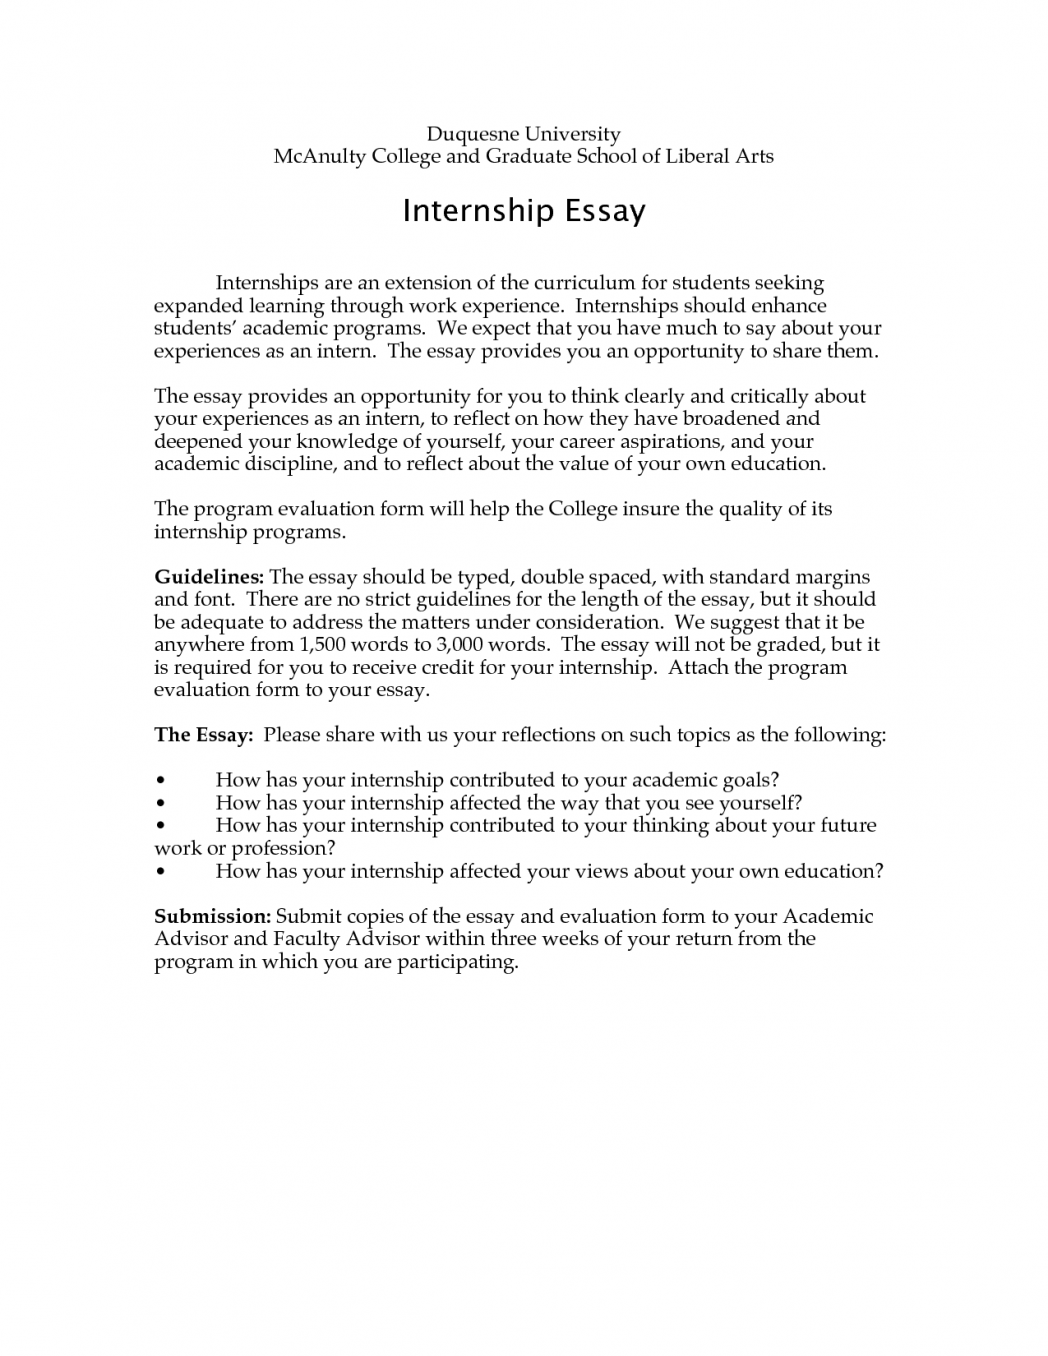 ≡Essays on Internship. Free Examples of Research Paper Topics, Titles GradesFixer